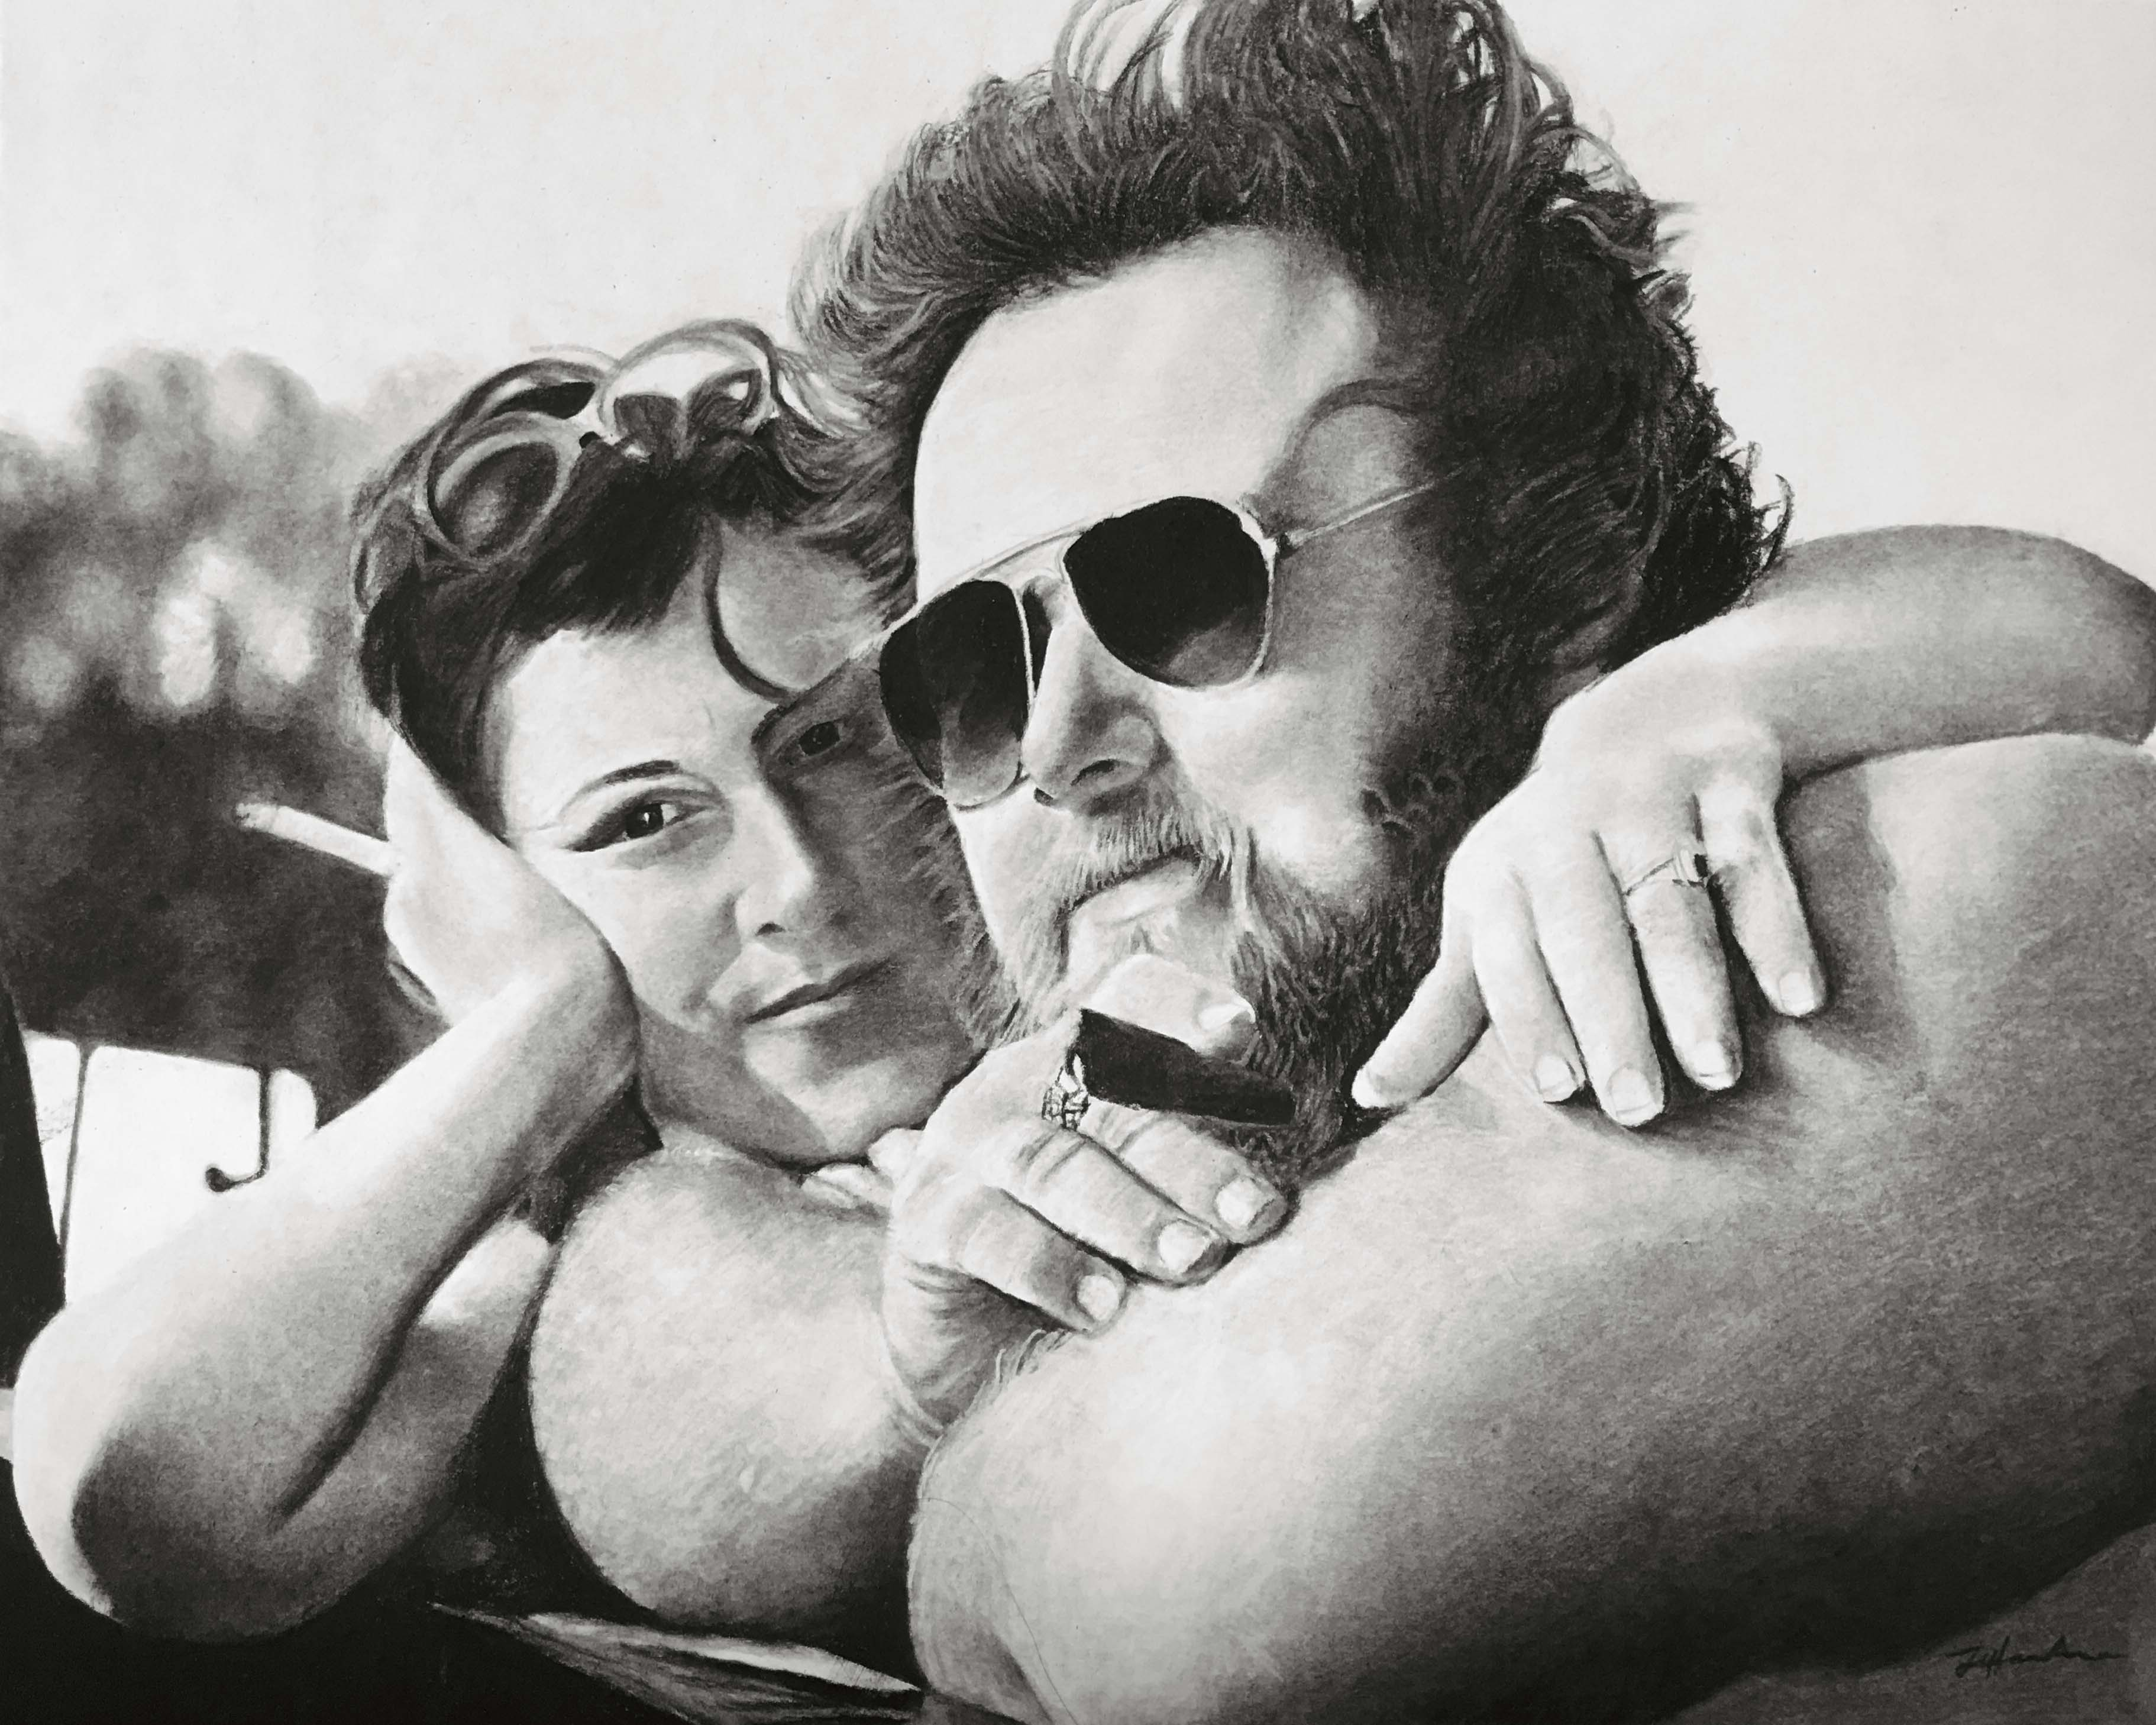 hyperrealistic charcoal portrait hand drawn couple the johnsons 70s style groovy cigar and shades